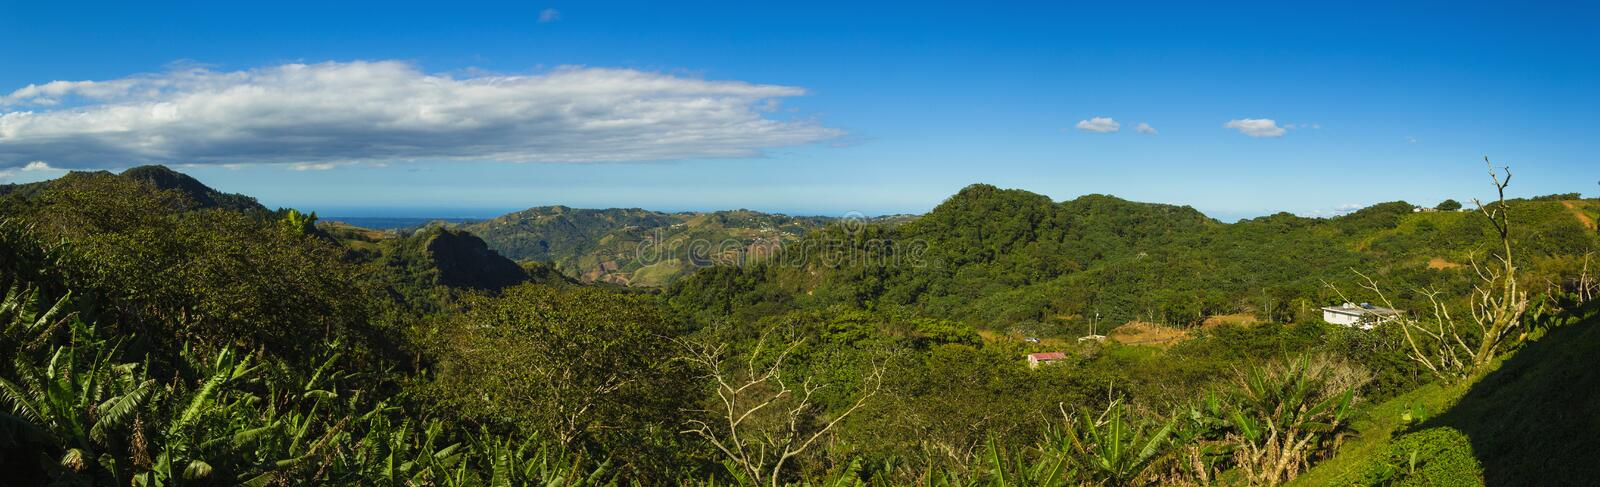 Cordillera Central main mountain range in Puerto Rico. The range crosses the island from west to east and divides the island into northern and southern coastal royalty free stock photography